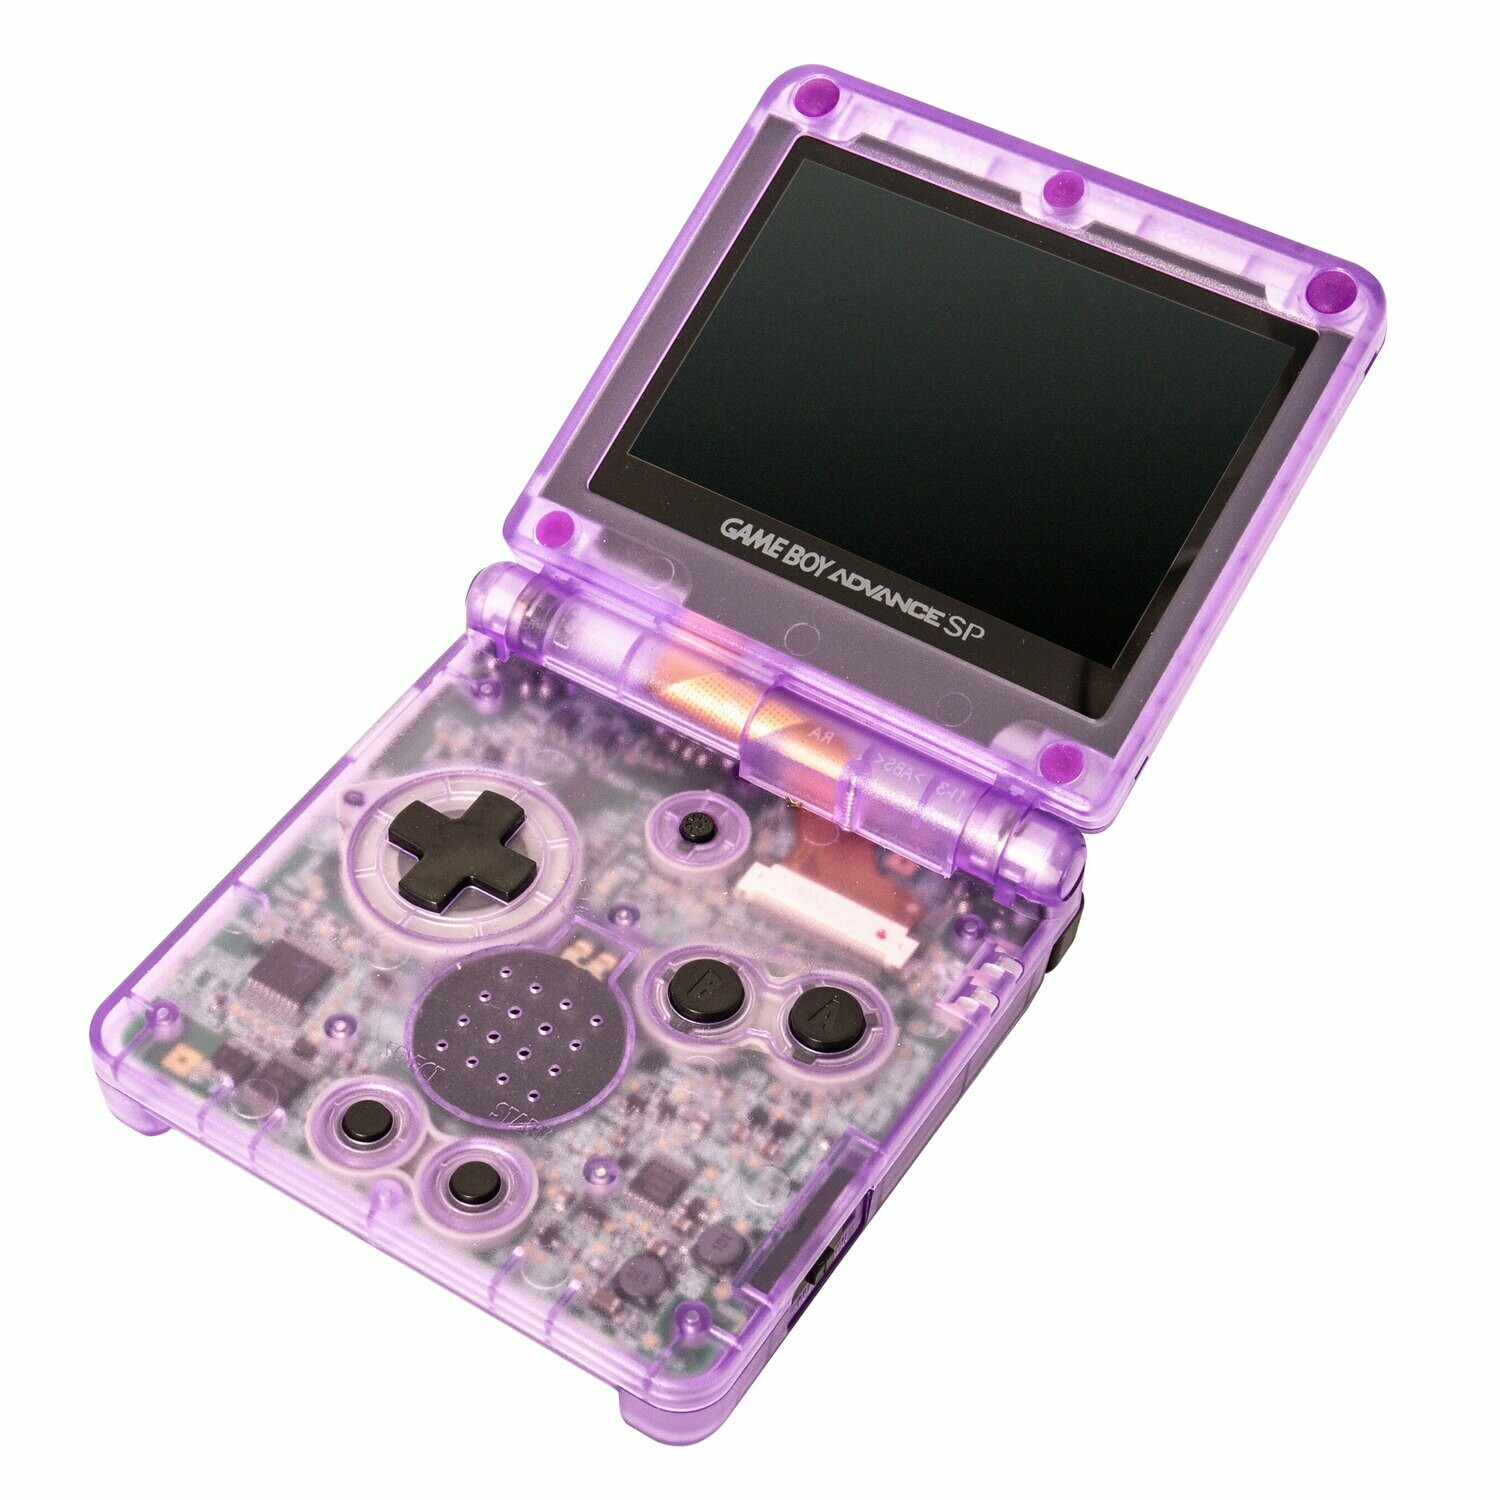 Game Boy Advance SP: Prestige Edition (Clear Purple)